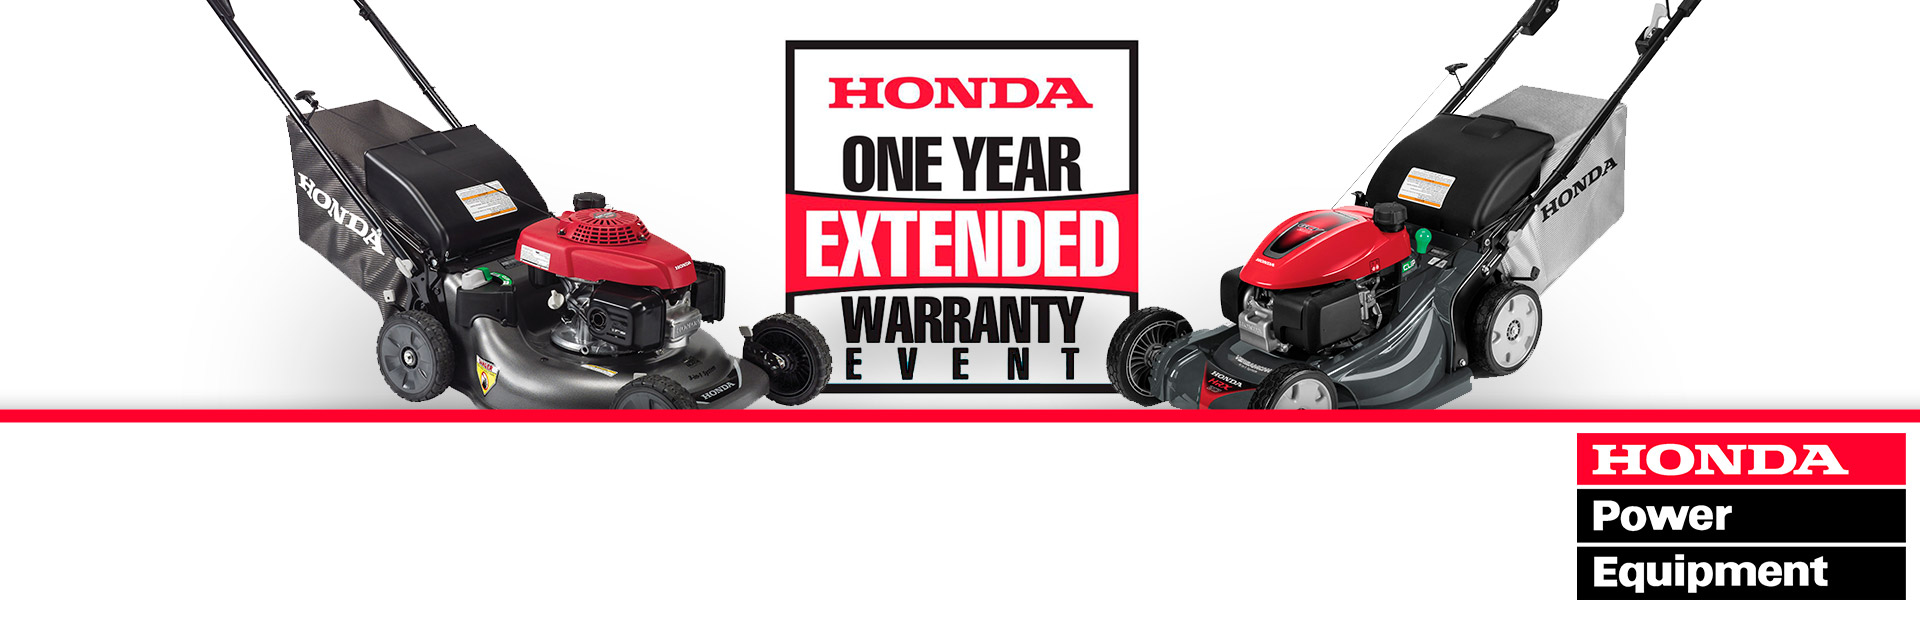 Honda Power Equipment: One Year Extended Warranty on all HRR, HRX, & HRS